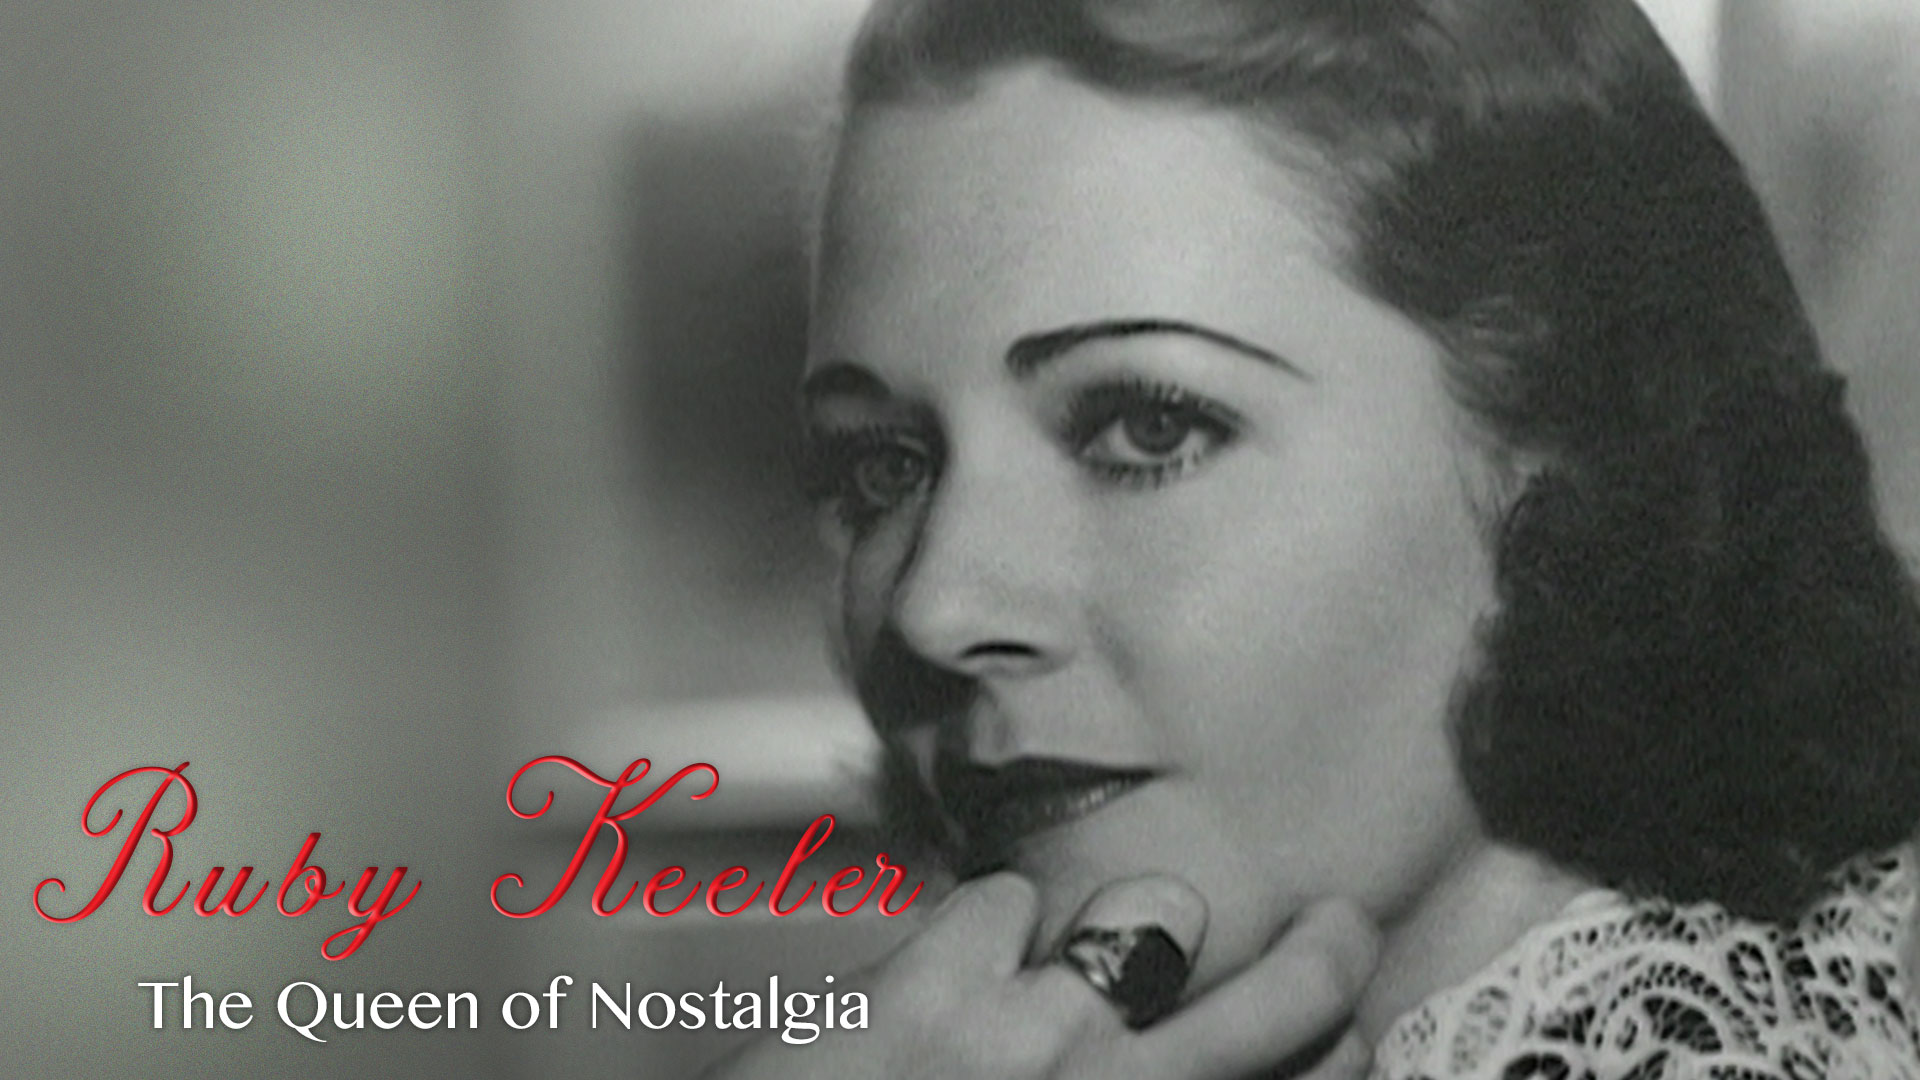 Ruby Keeler: The Queen of Nostalgia